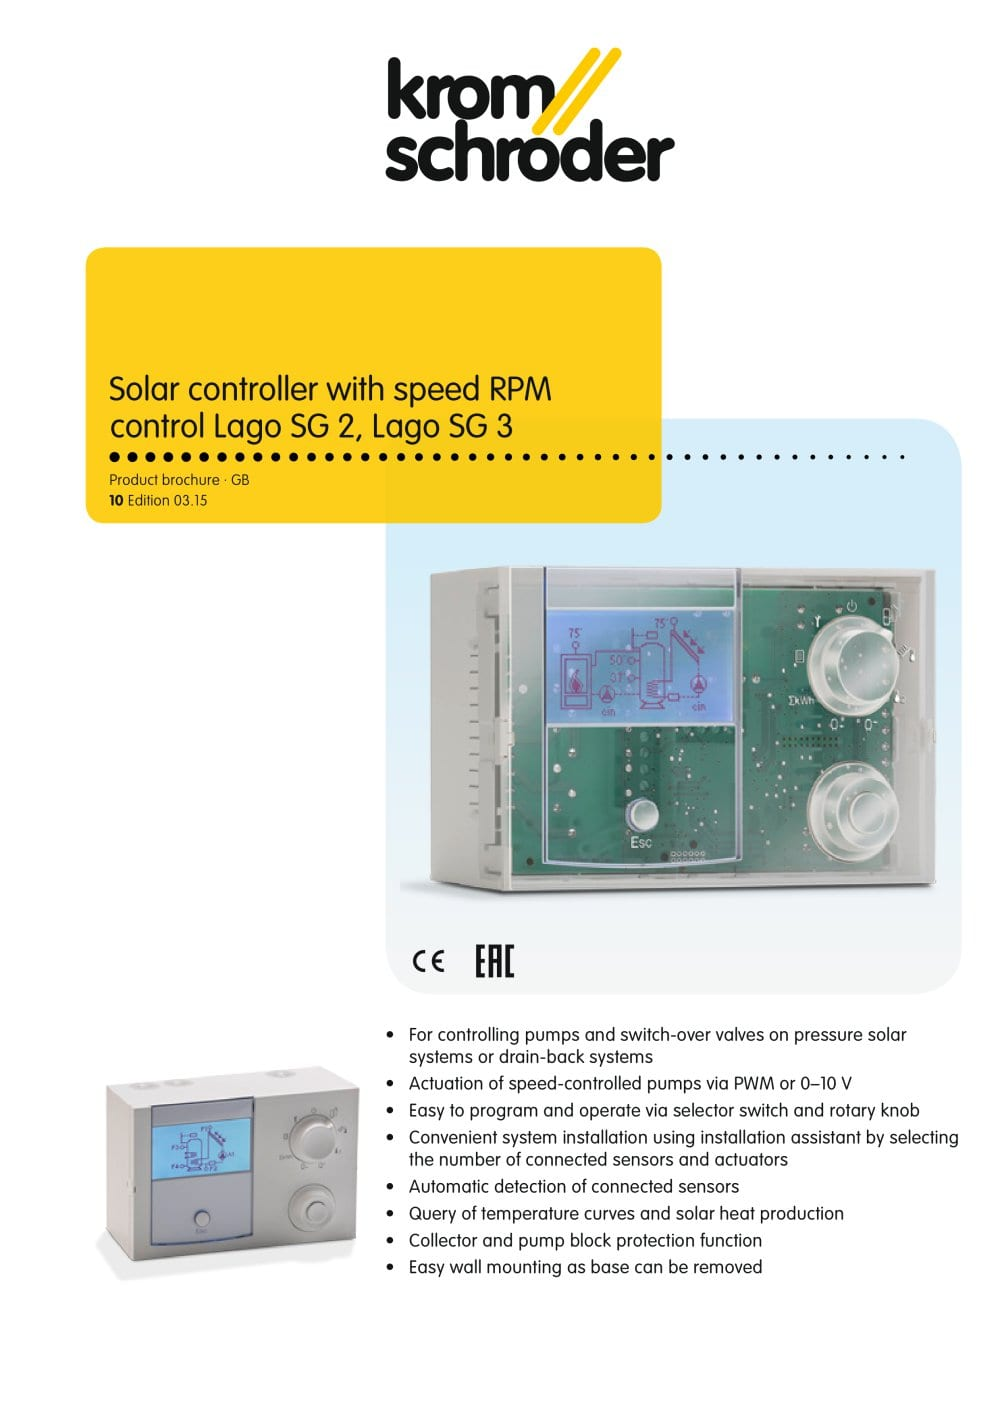 Solar Controller With Speed Rpm Control Lago Sg 2 3 Heat Sensor Automatic Temperature 1 4 Pages